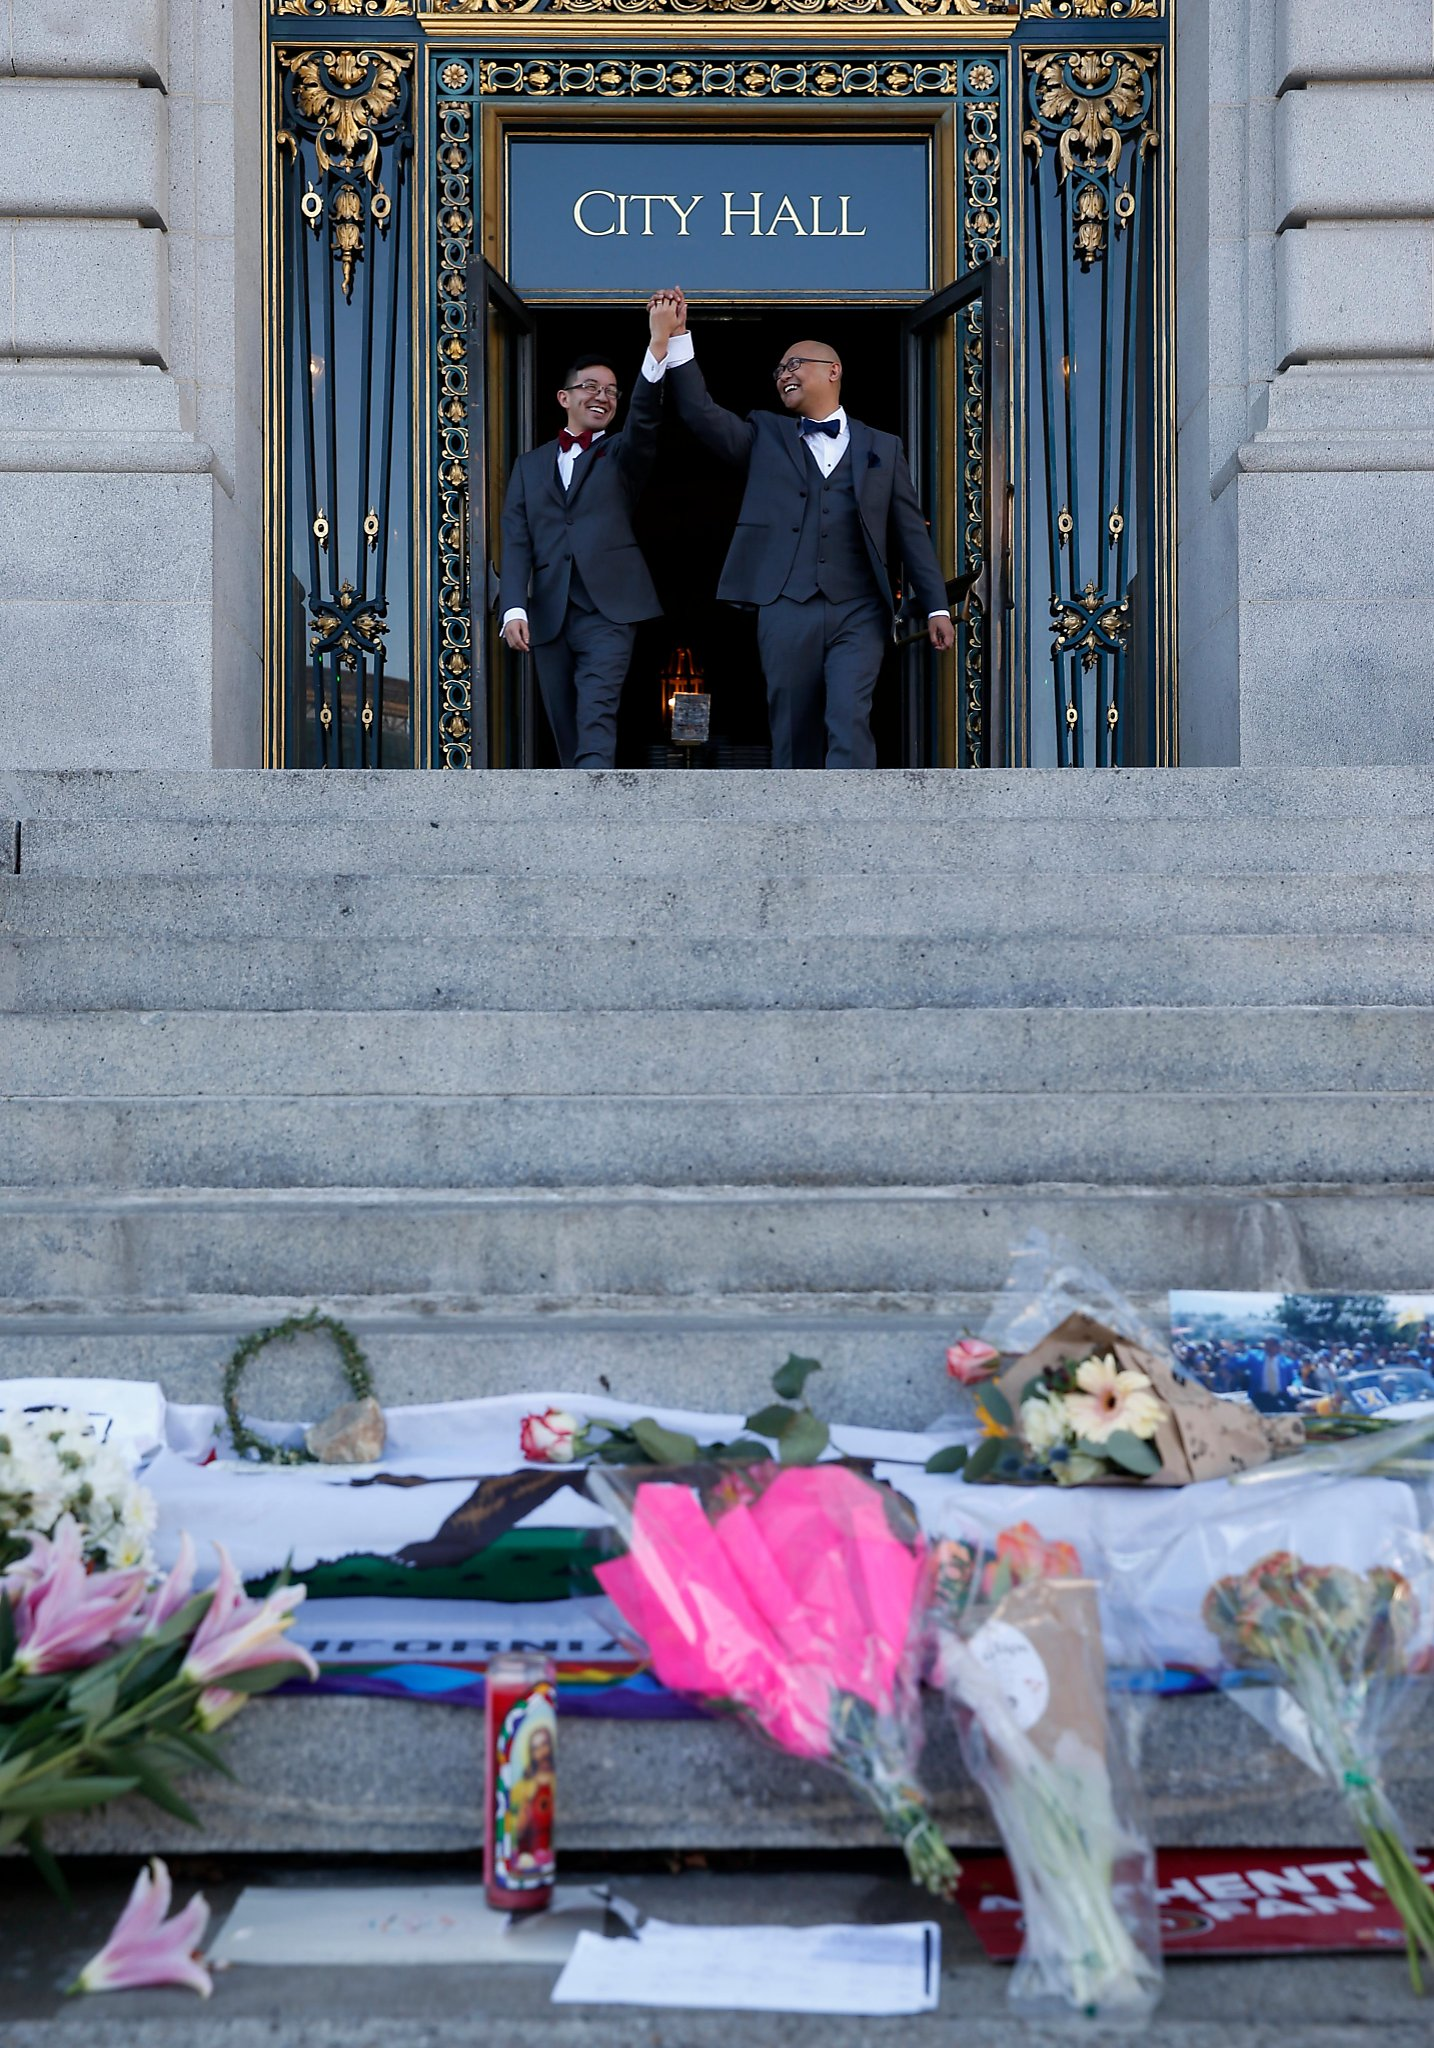 At City Hall Life Goes On Amid Mourning Sfchronicle